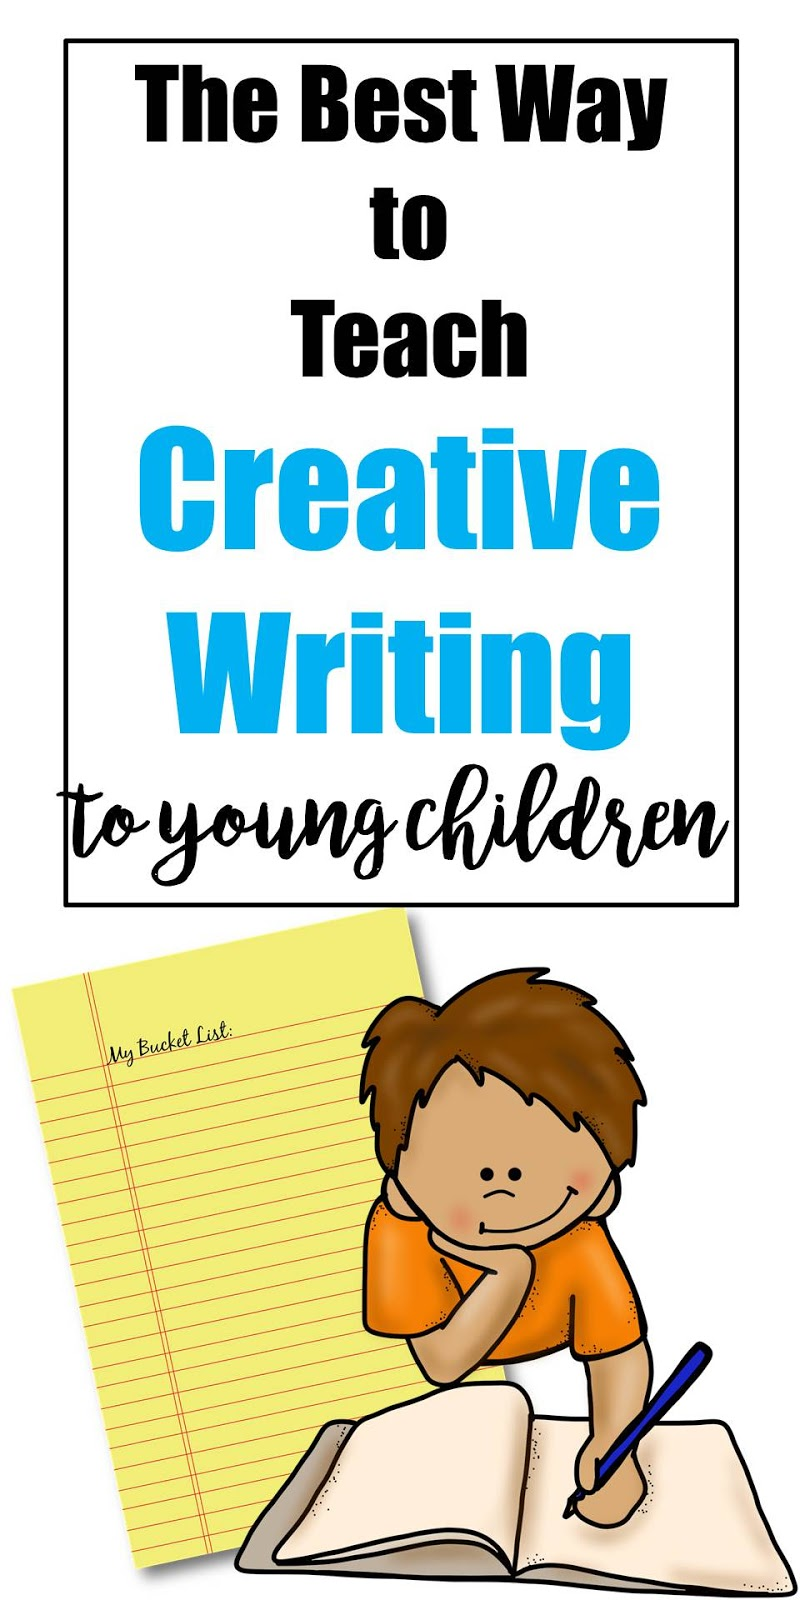 the creative writing a childs courage Creative writing tips for teachers introduction of a creative curriculum in school this offers more opportunities to extend and develop children's writing.